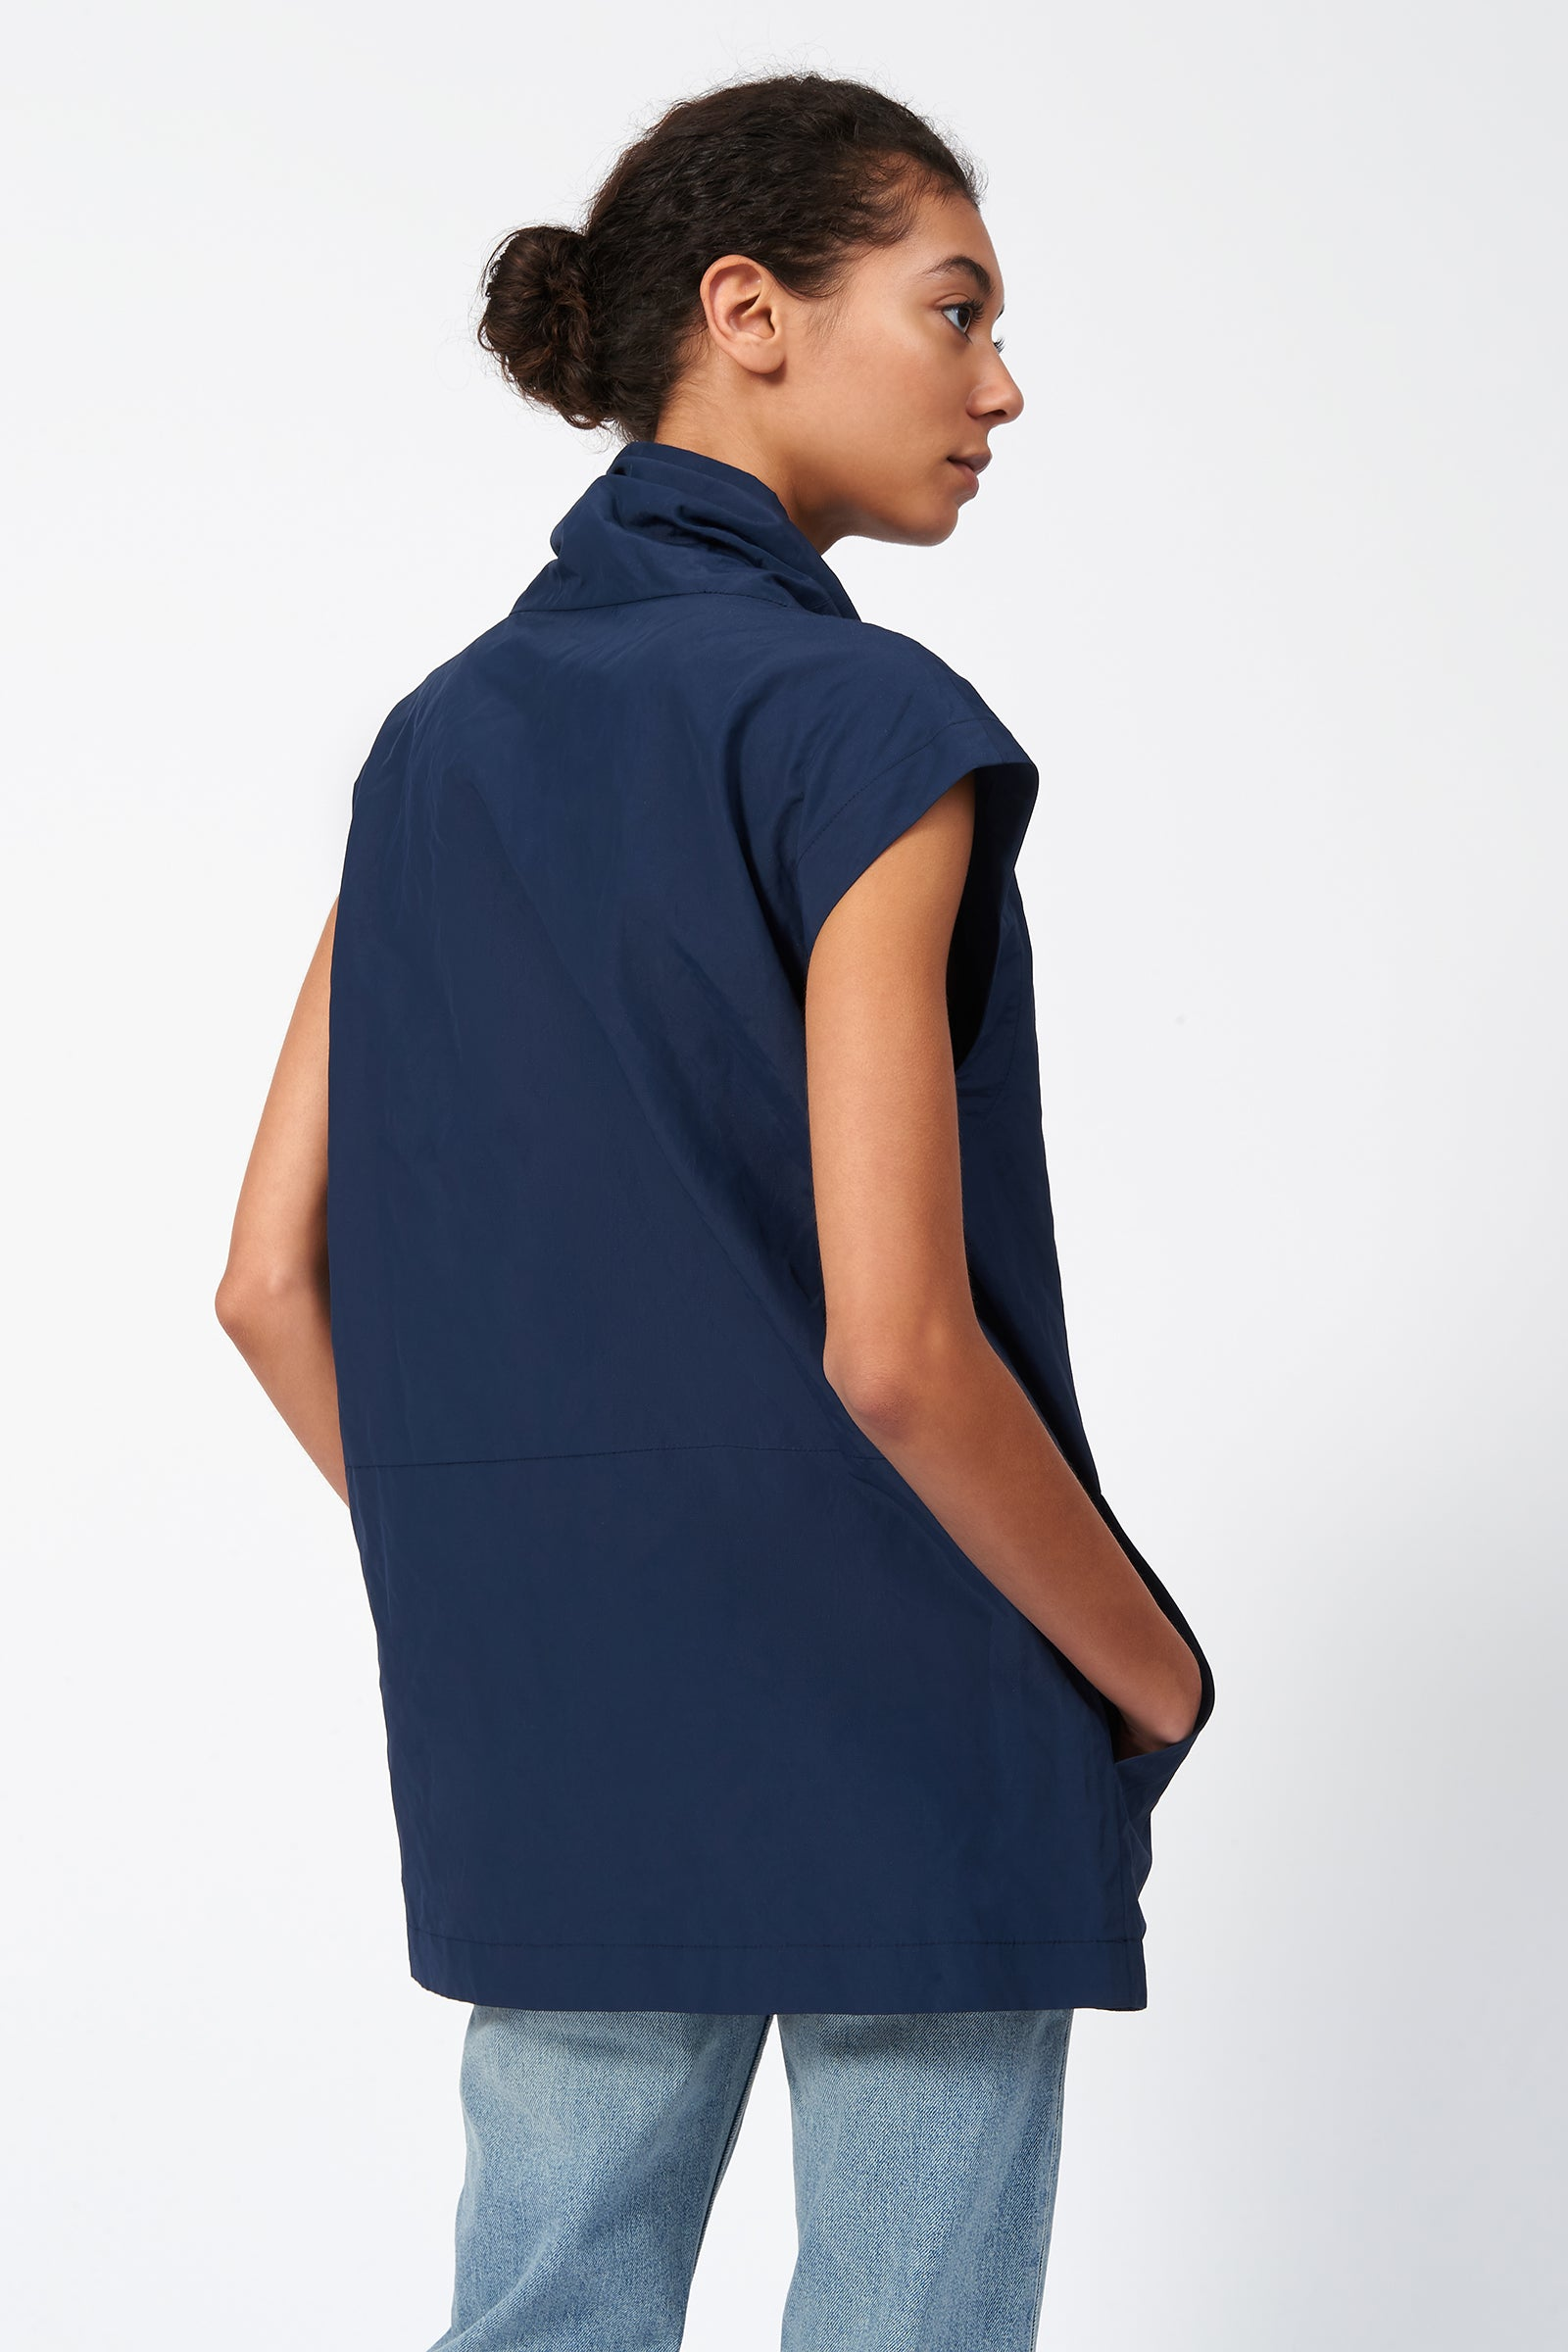 Kal Rieman Drawstring Pullover in Navy on Model Back View